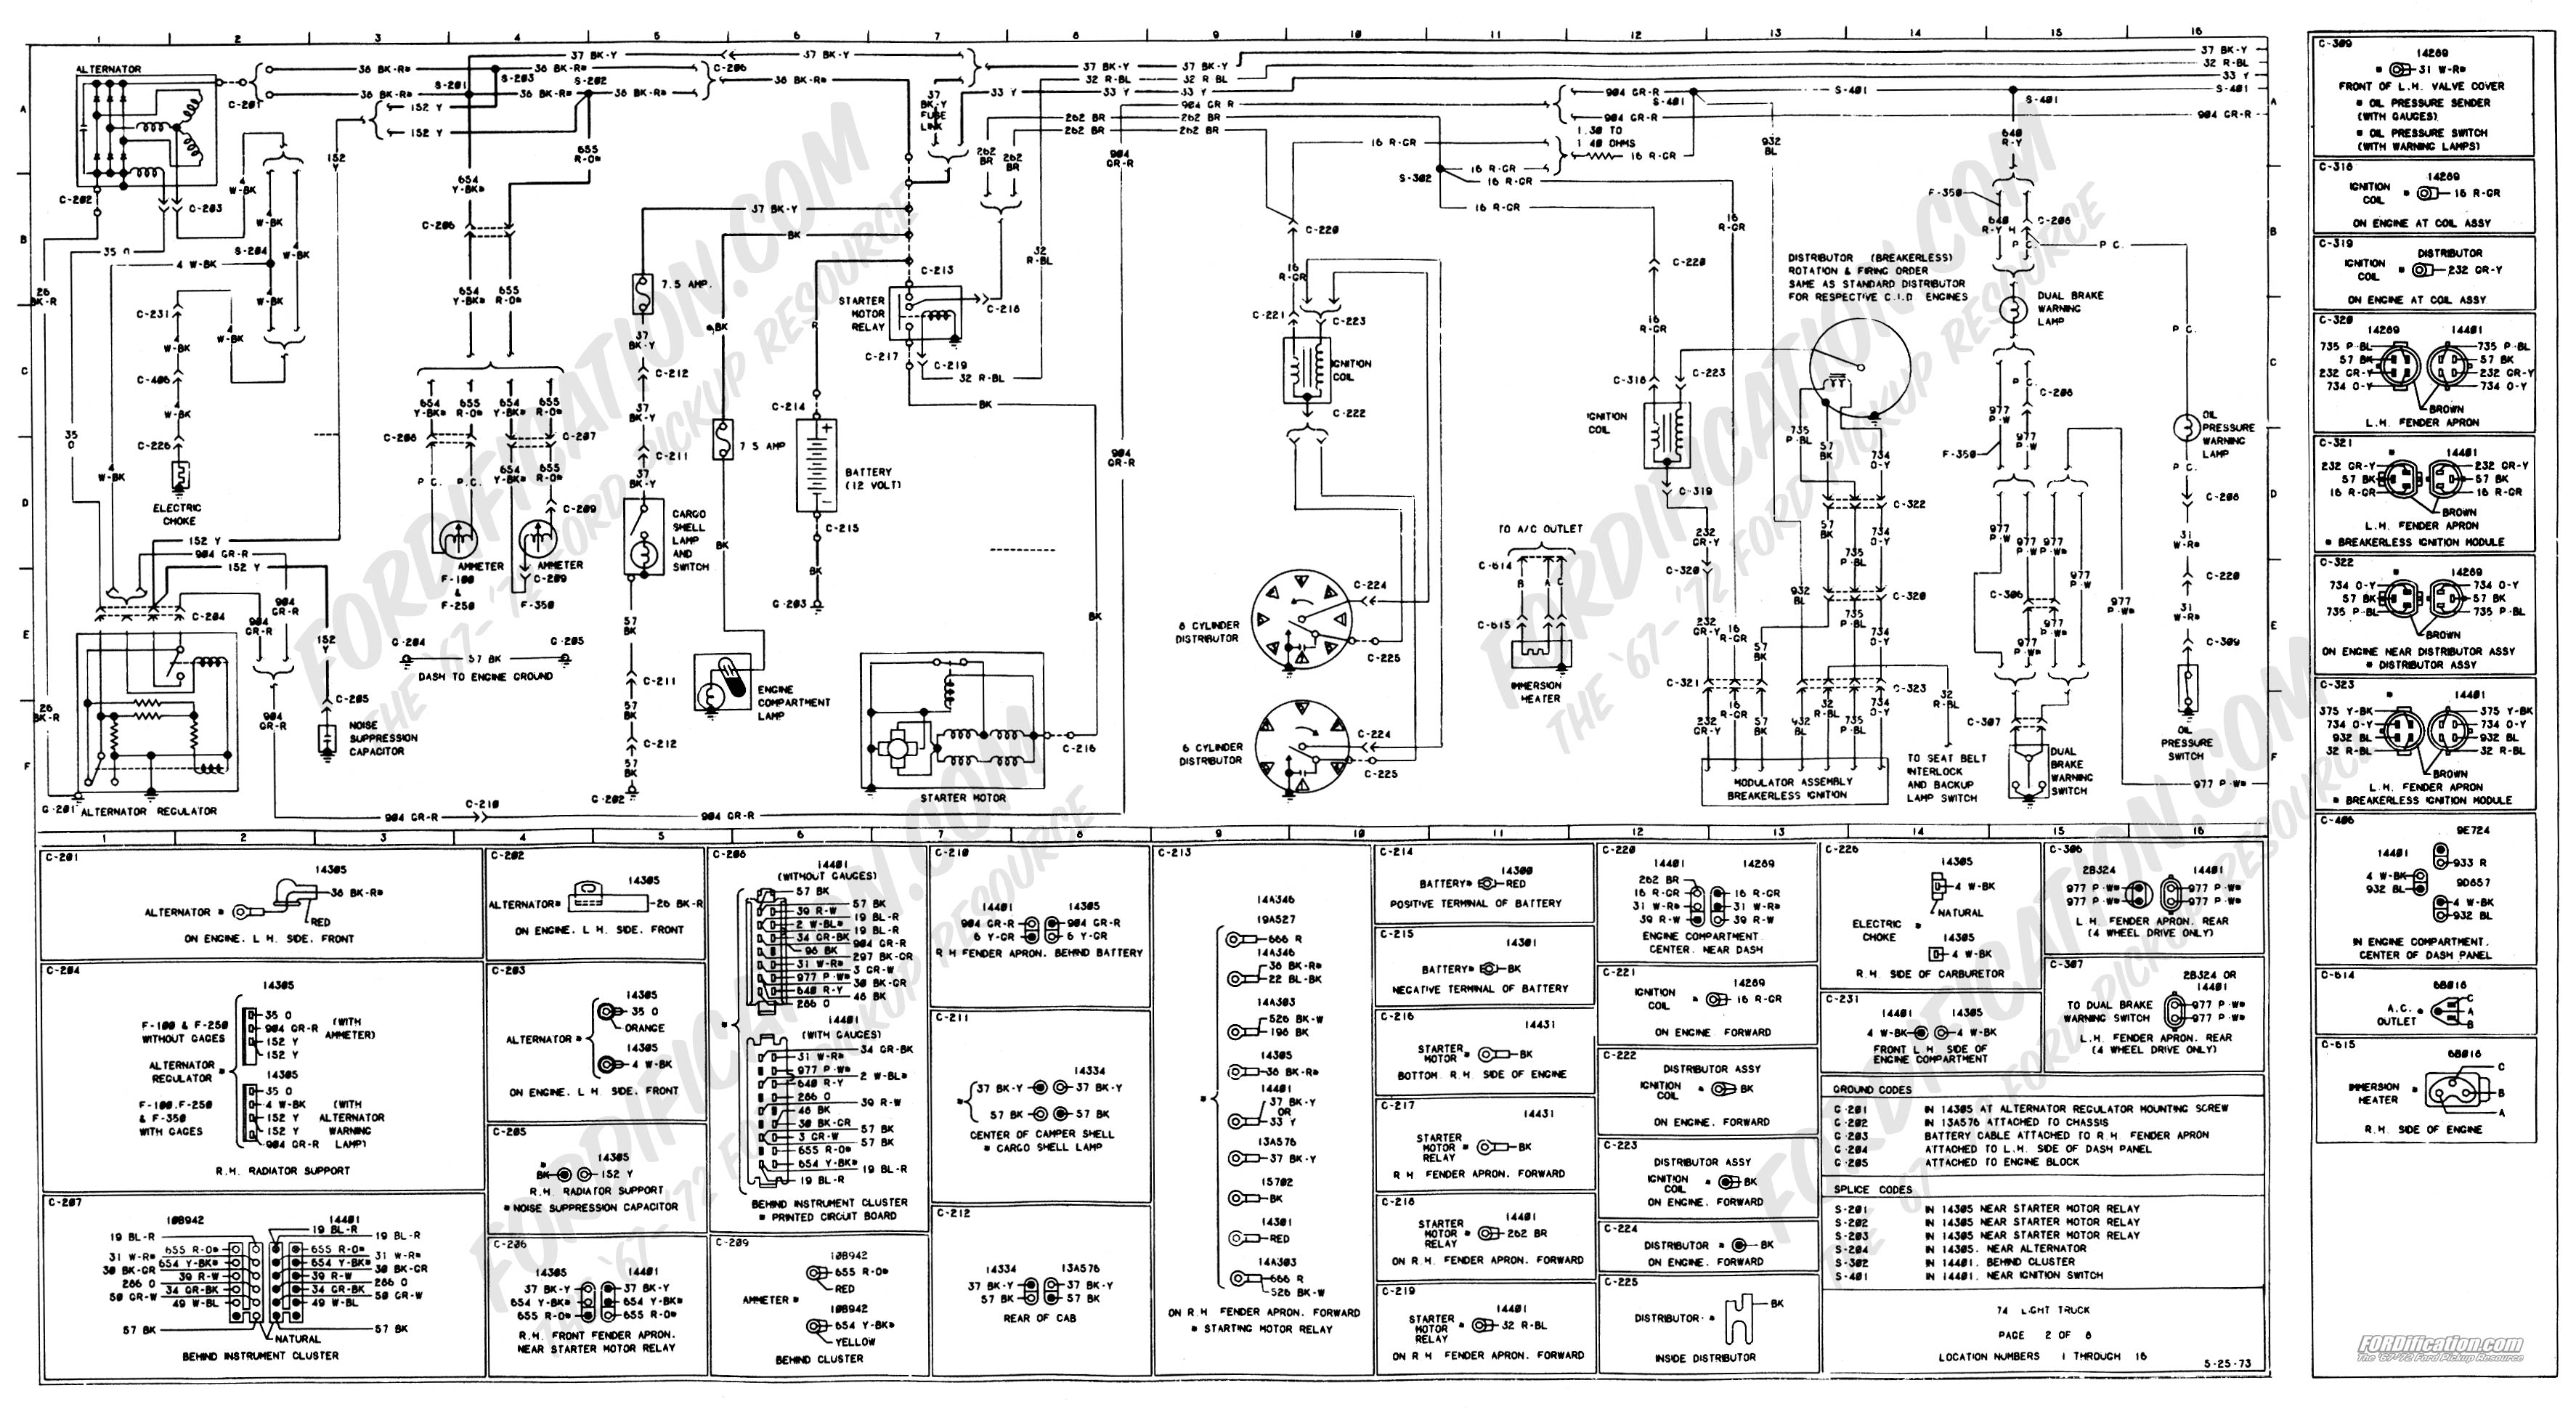 1972 Tr6 Wiring Diagram Schematic 74 F100 Schemes 1973 1979 Ford Truck Diagrams Schematics Fordification Net Early Bronco